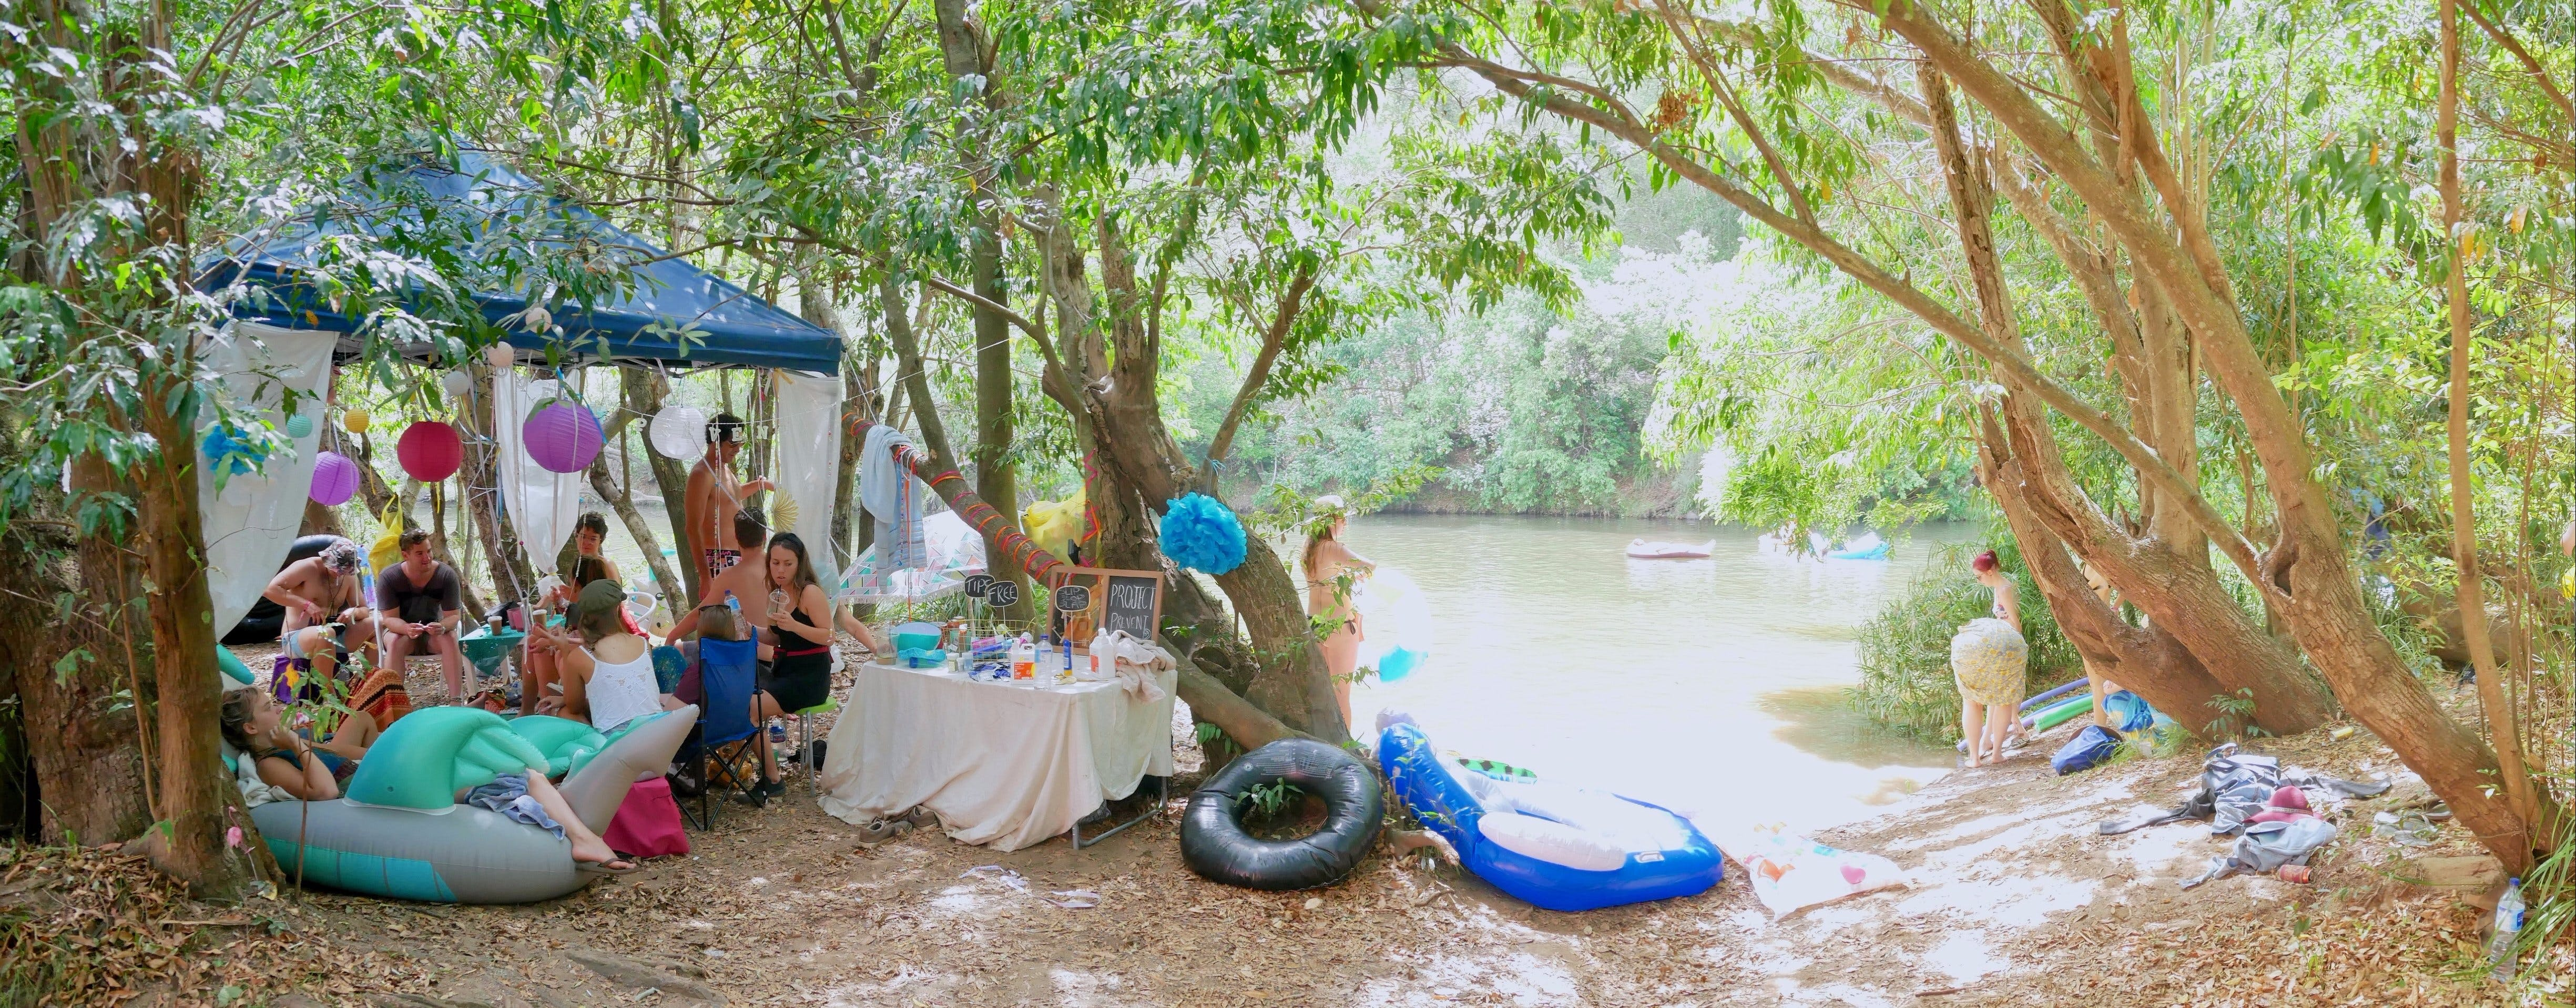 Jungle Love Festival - Byron Bay Accommodations